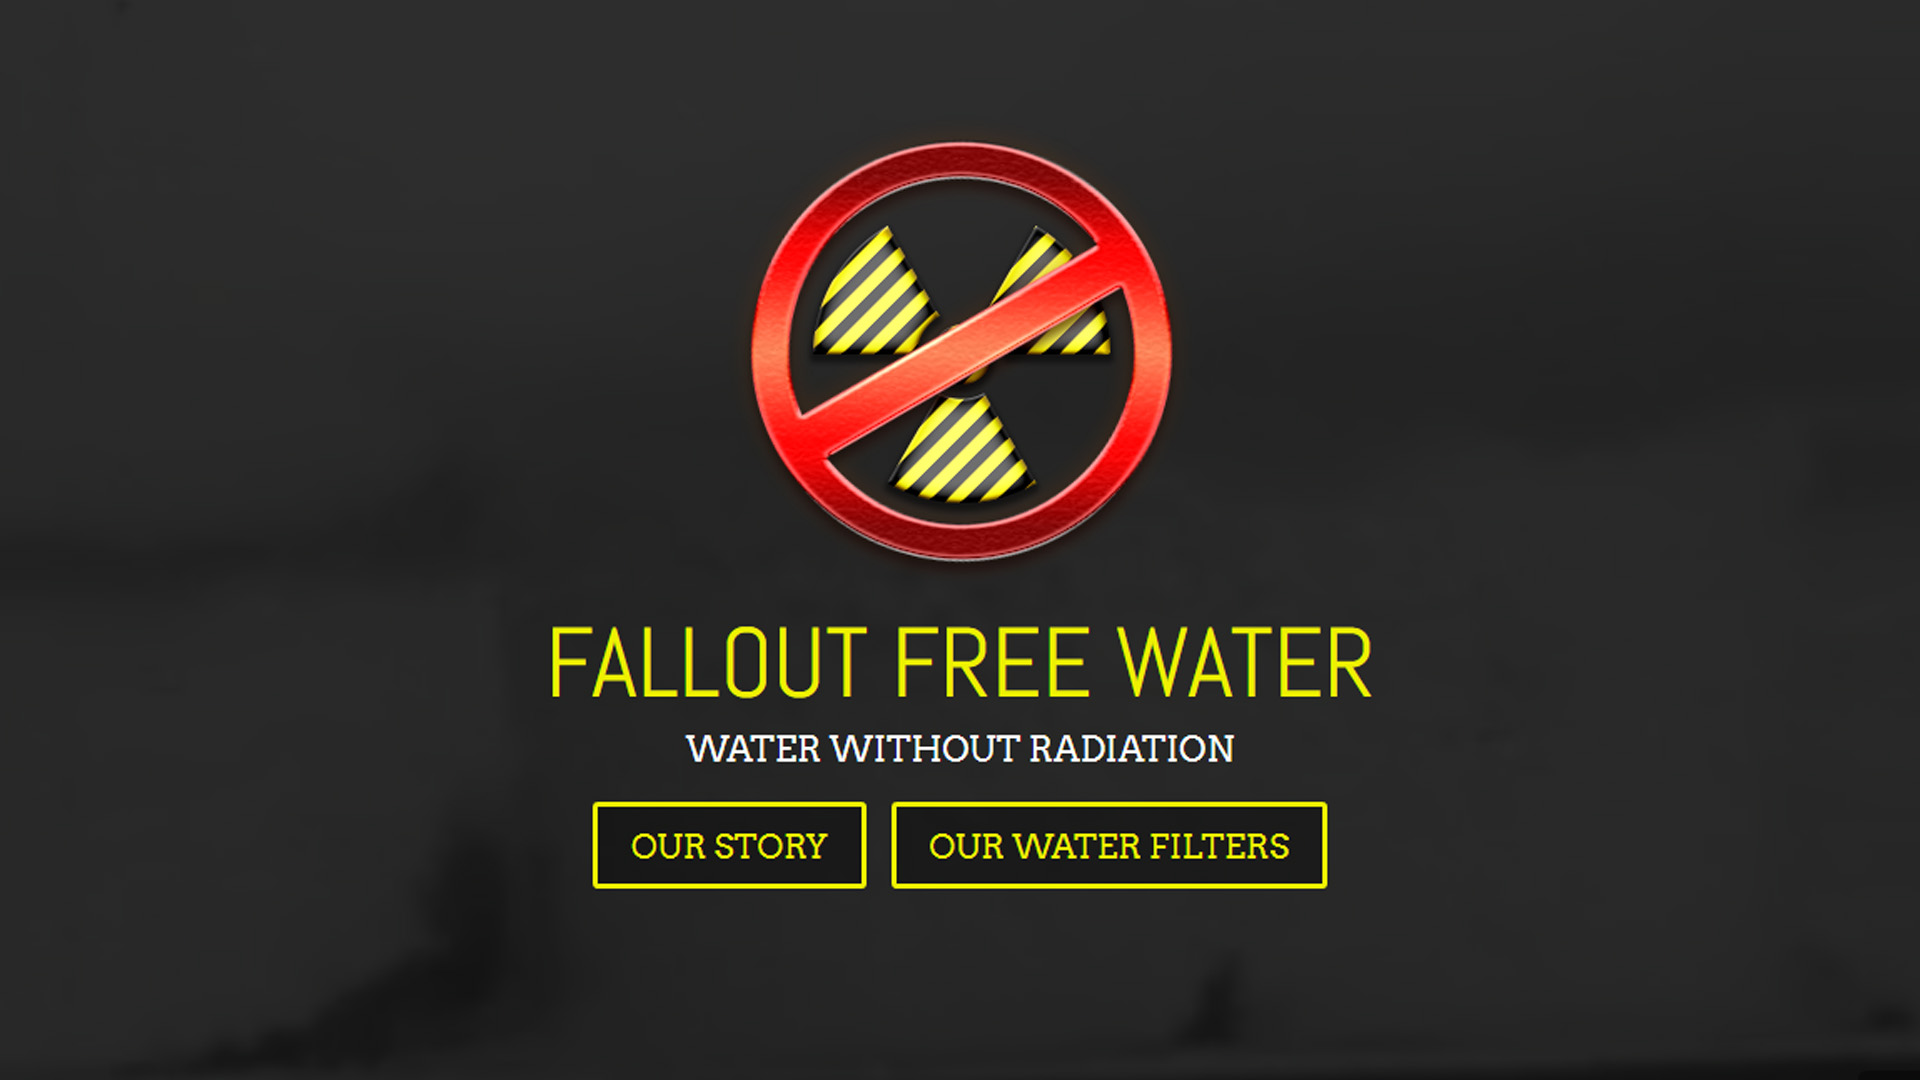 falloutfreewater.com by luke bullock screenshot